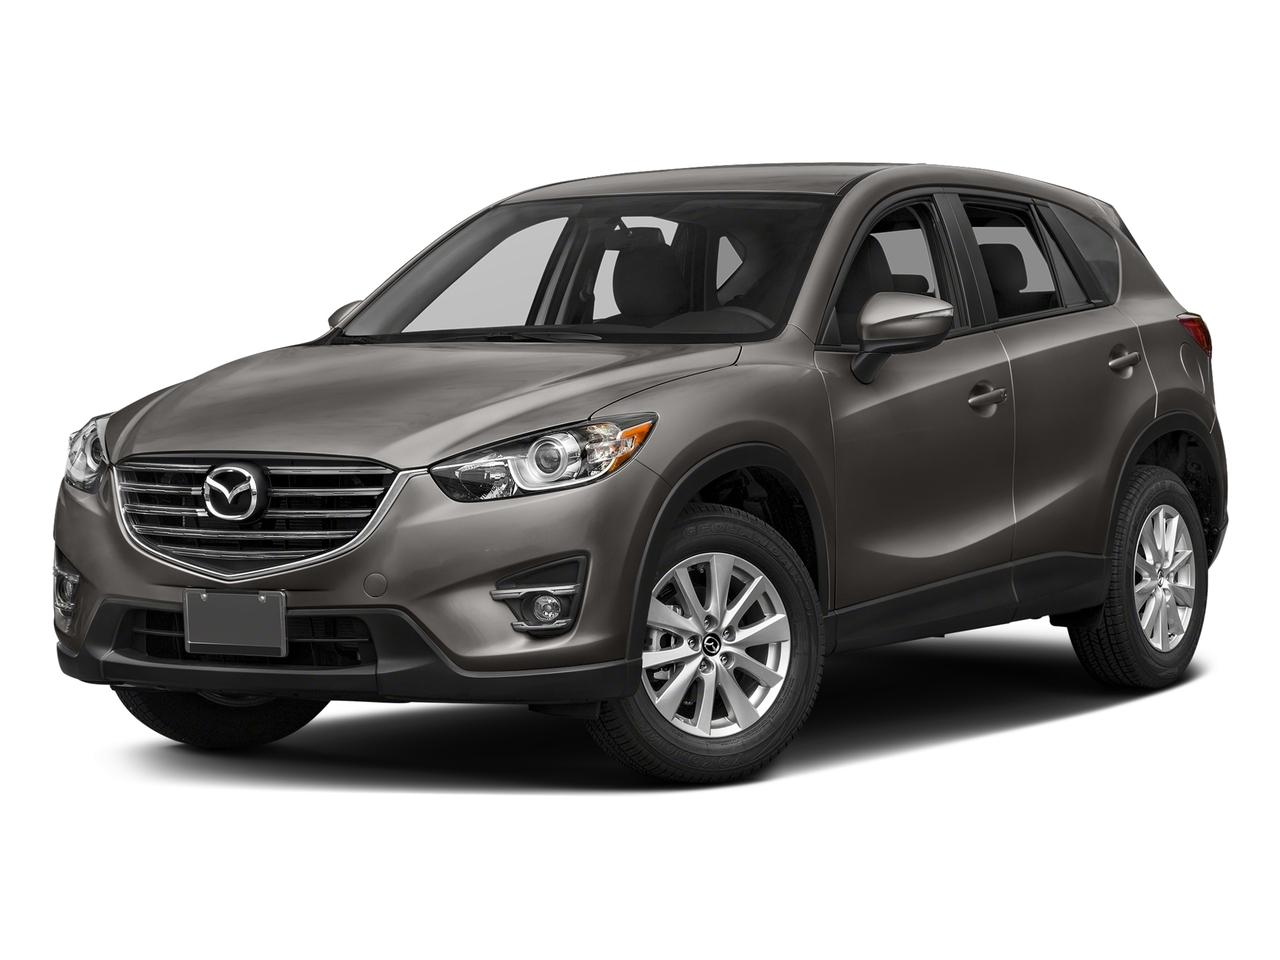 2016 Mazda CX-5 Vehicle Photo in Richmond, TX 77469